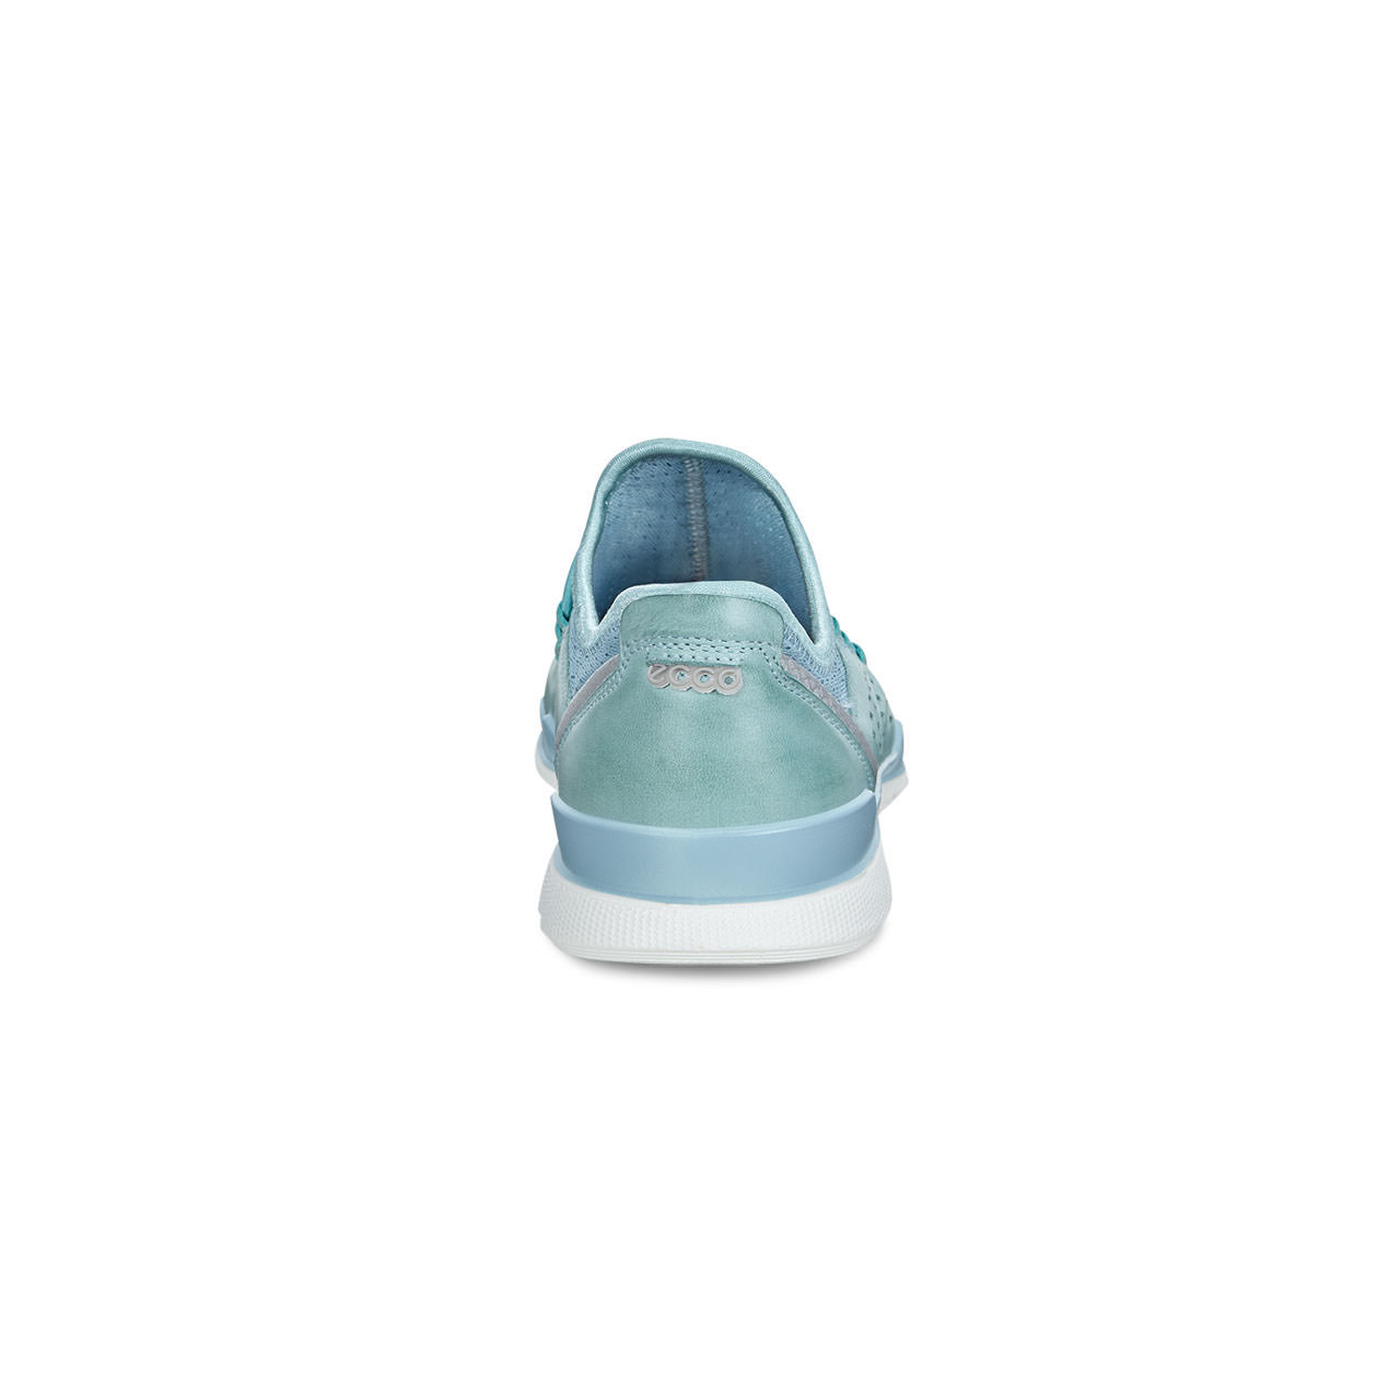 101d9b5748 ECCO Womens Lynx | Women's Shoes | ECCO® Shoes